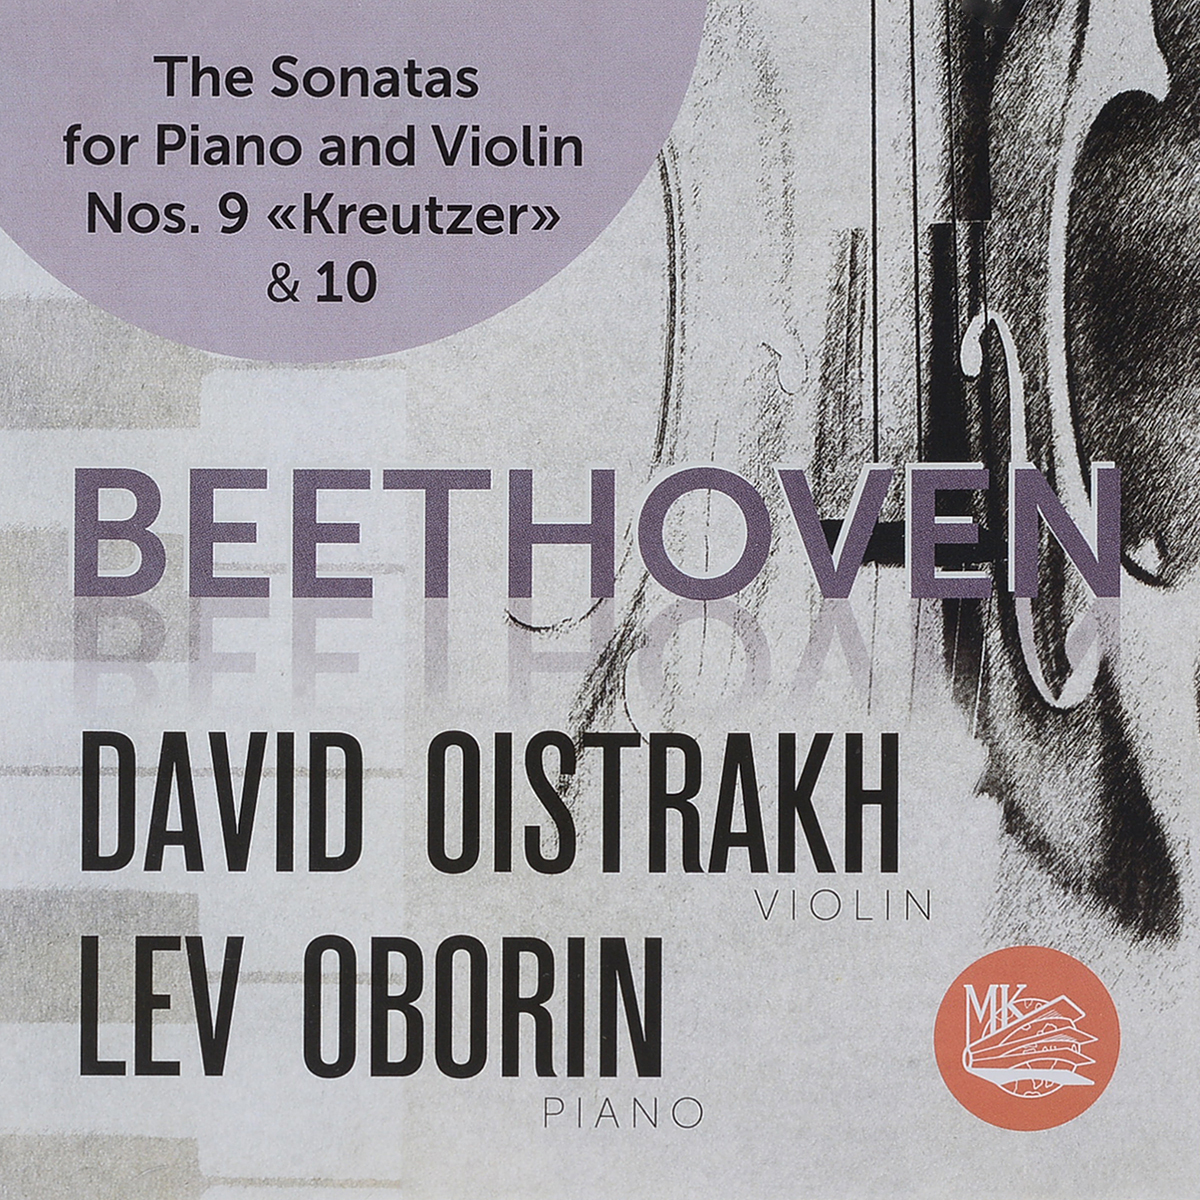 David Oistrakh. Lev Oborin. Beethoven. The Sonatas For Piano And Violin No. 9